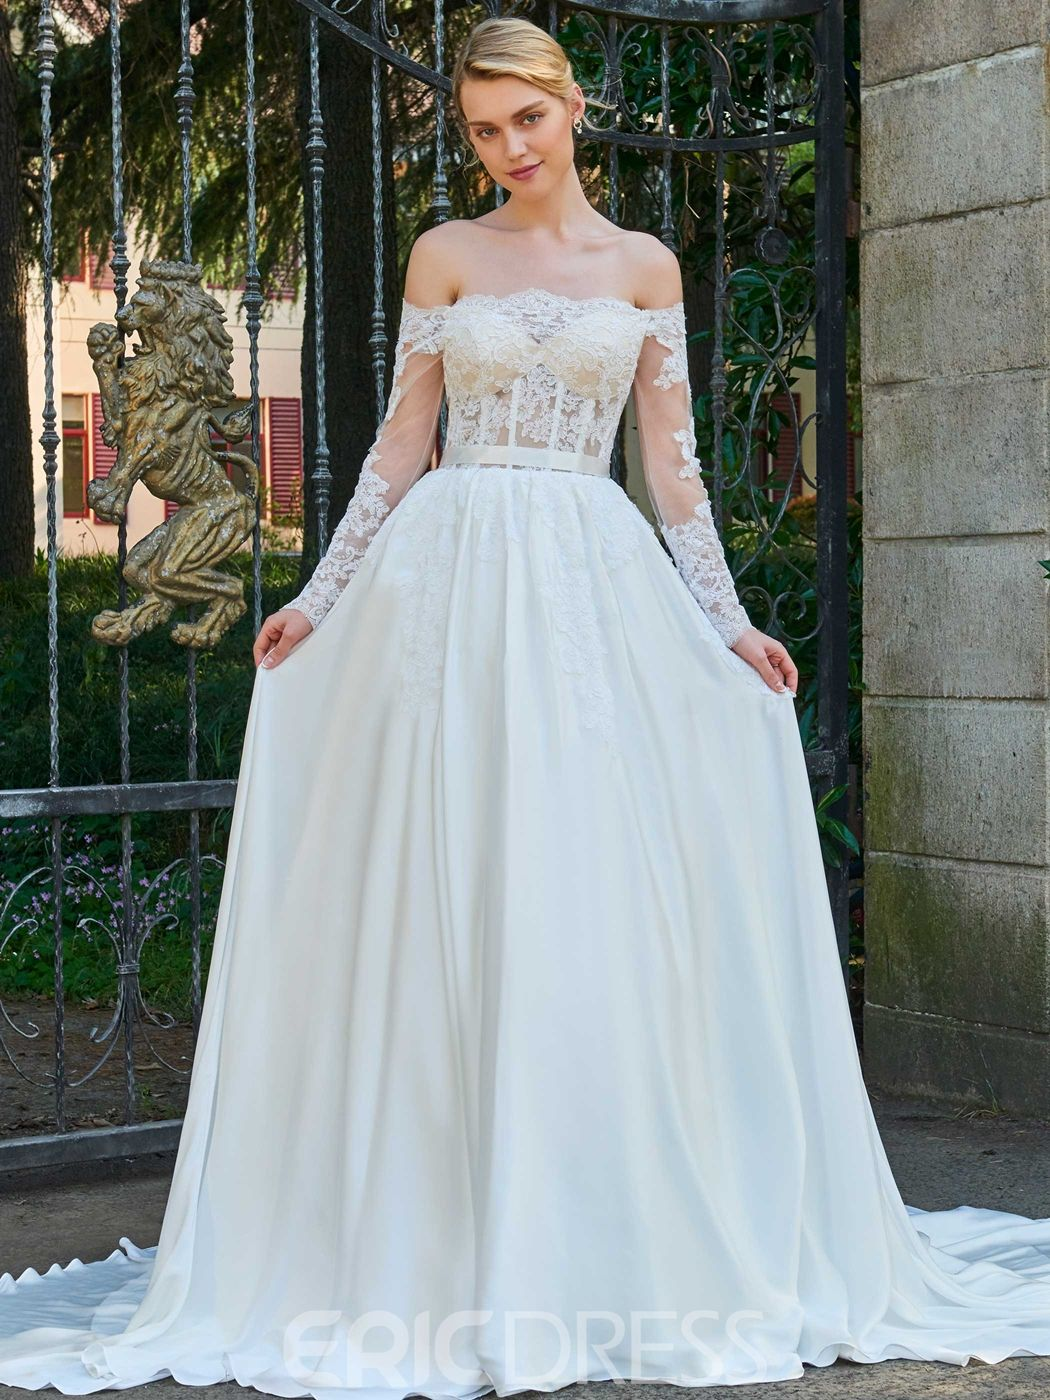 Funky Wedding Gown Material Component - All Wedding Dresses ...